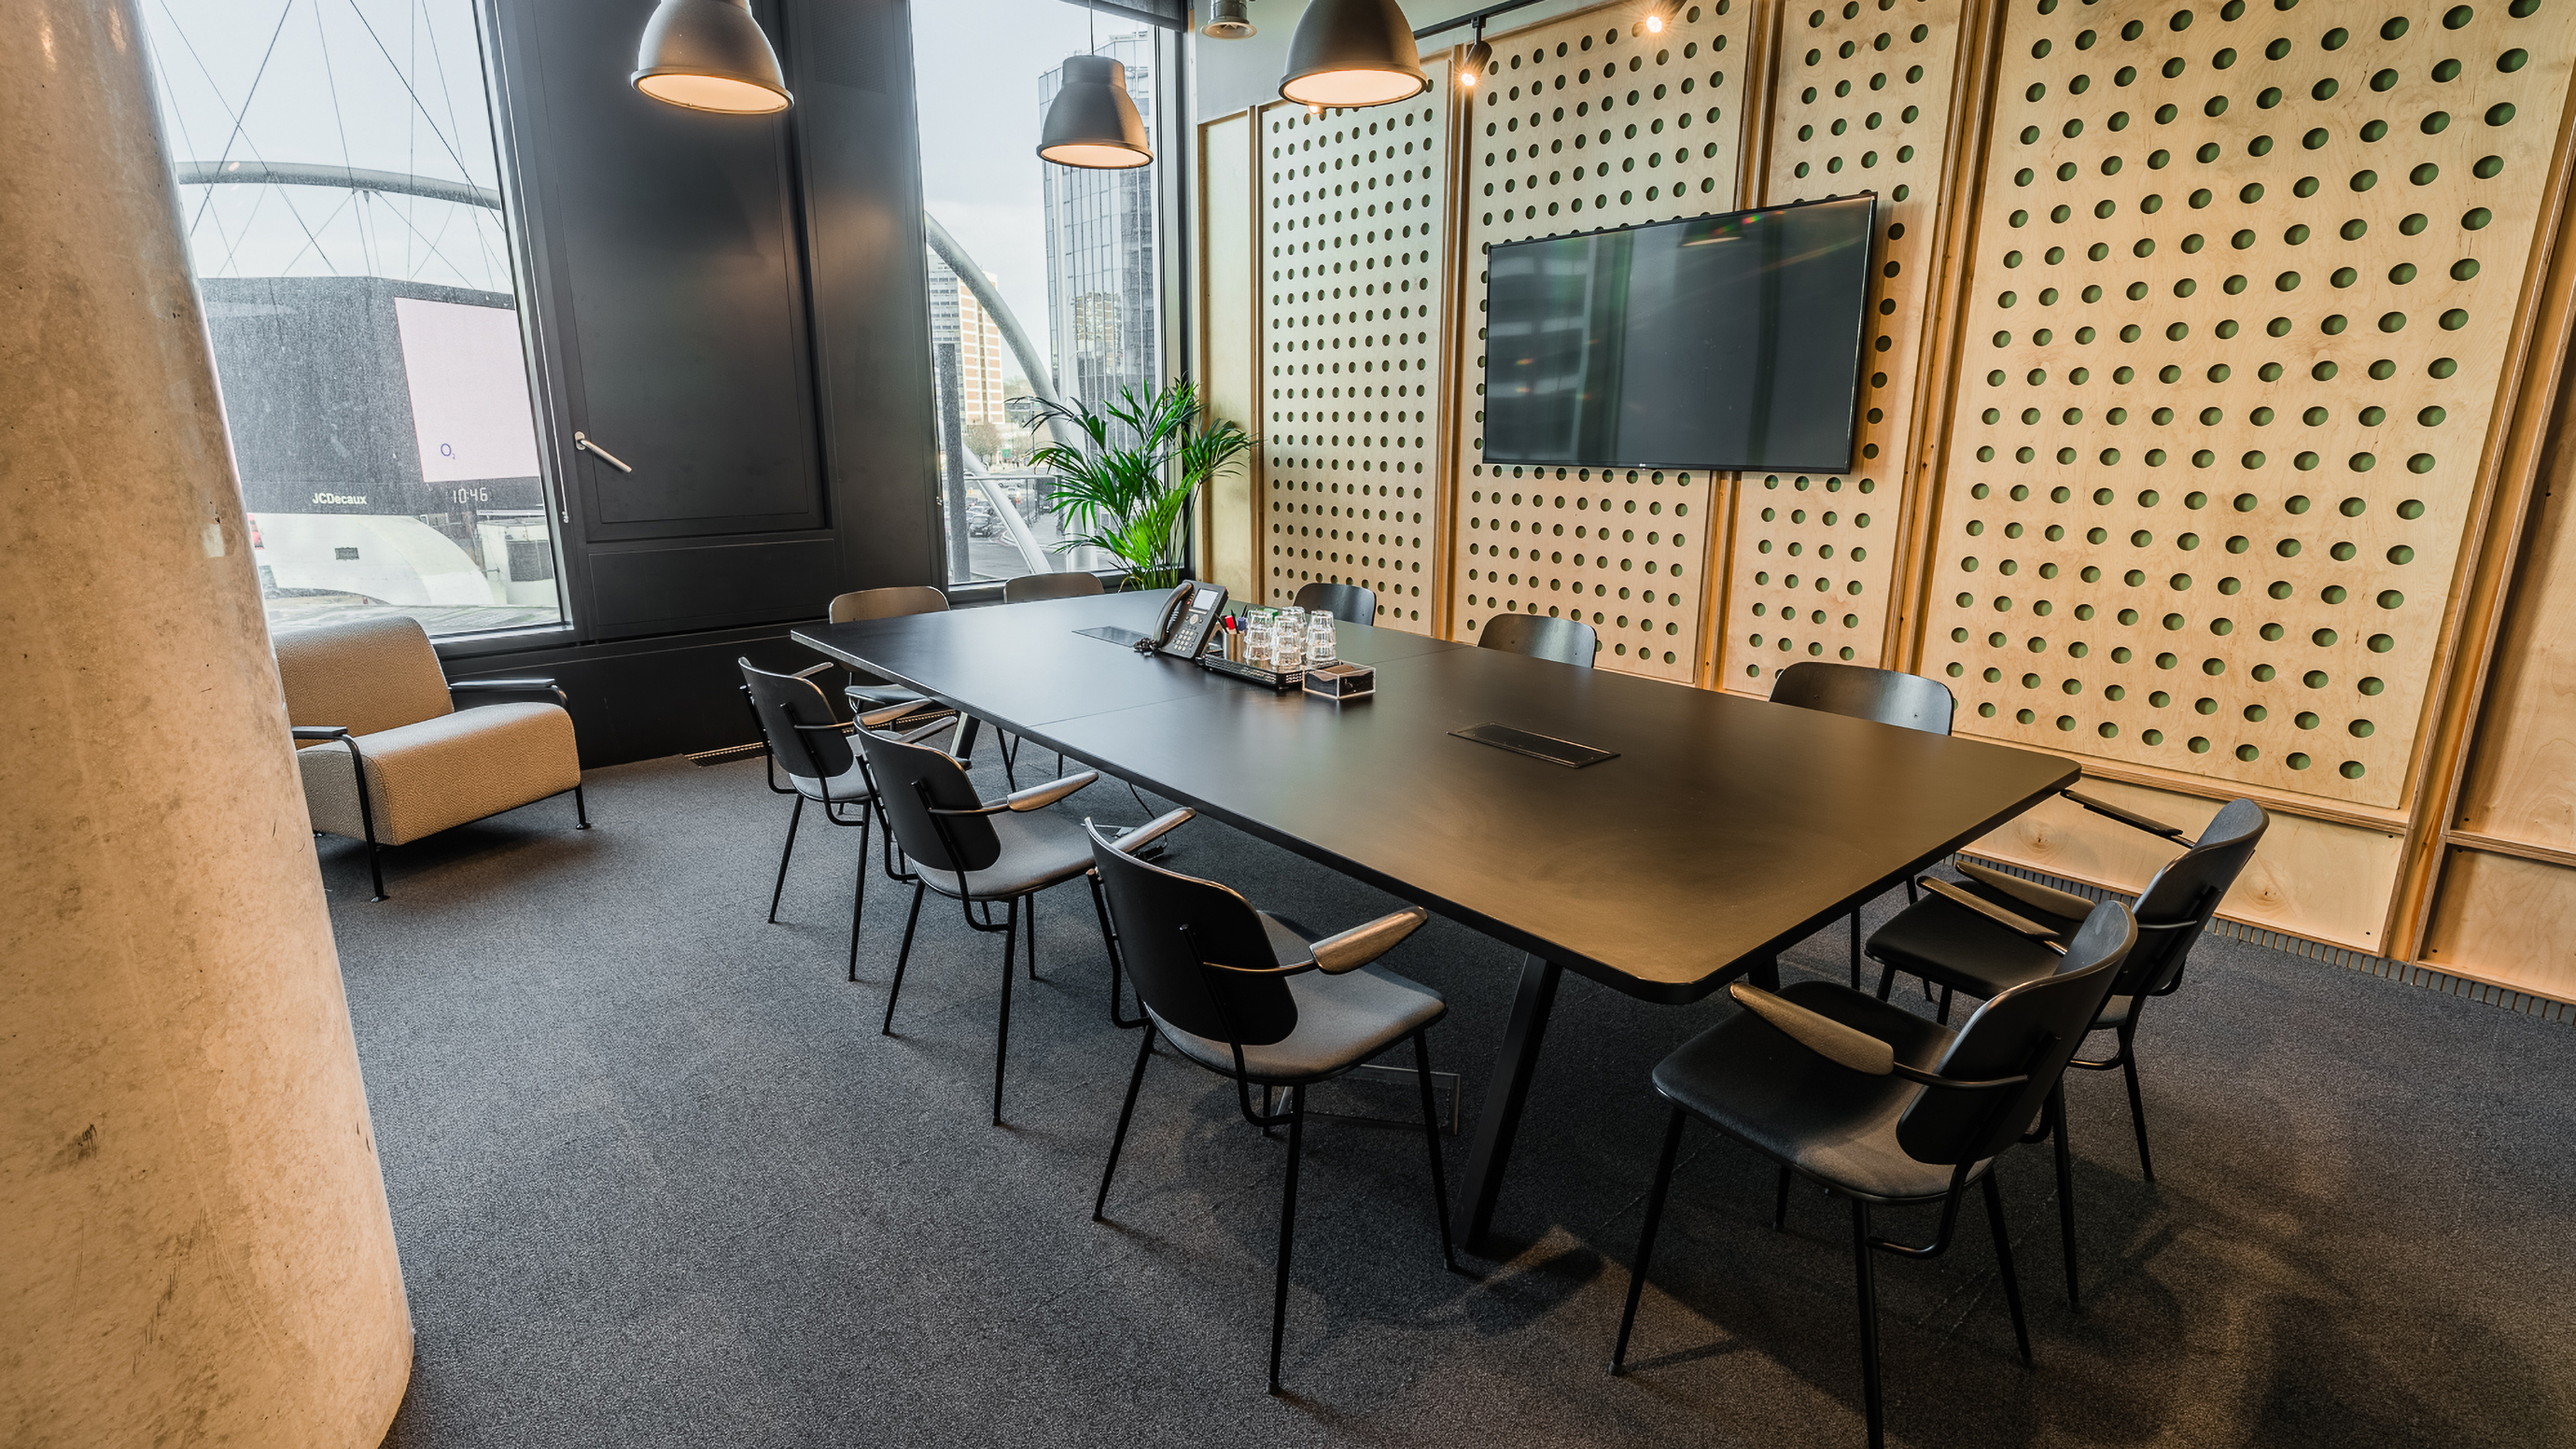 Medium meeting room with dark table and chairs and wooden panelled walls and tv screen at TOG building White Collar Factory London